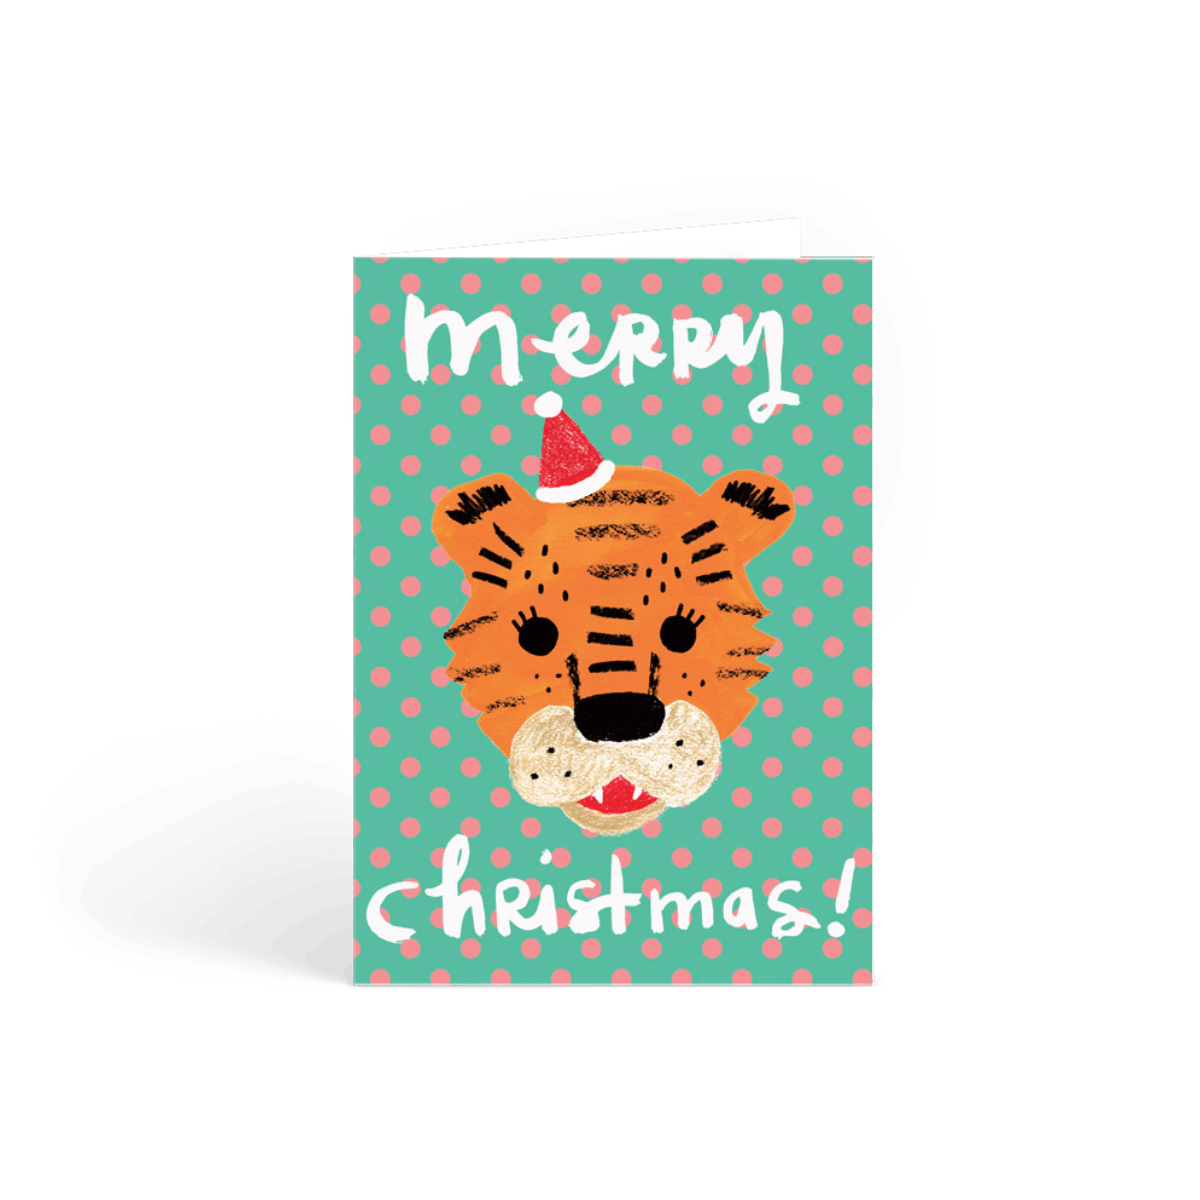 Https%3a%2f%2fwww.papier.com%2fproduct image%2f24393%2f2%2fmerry xmas tiger 6105 front 1498143591.png?ixlib=rb 1.1